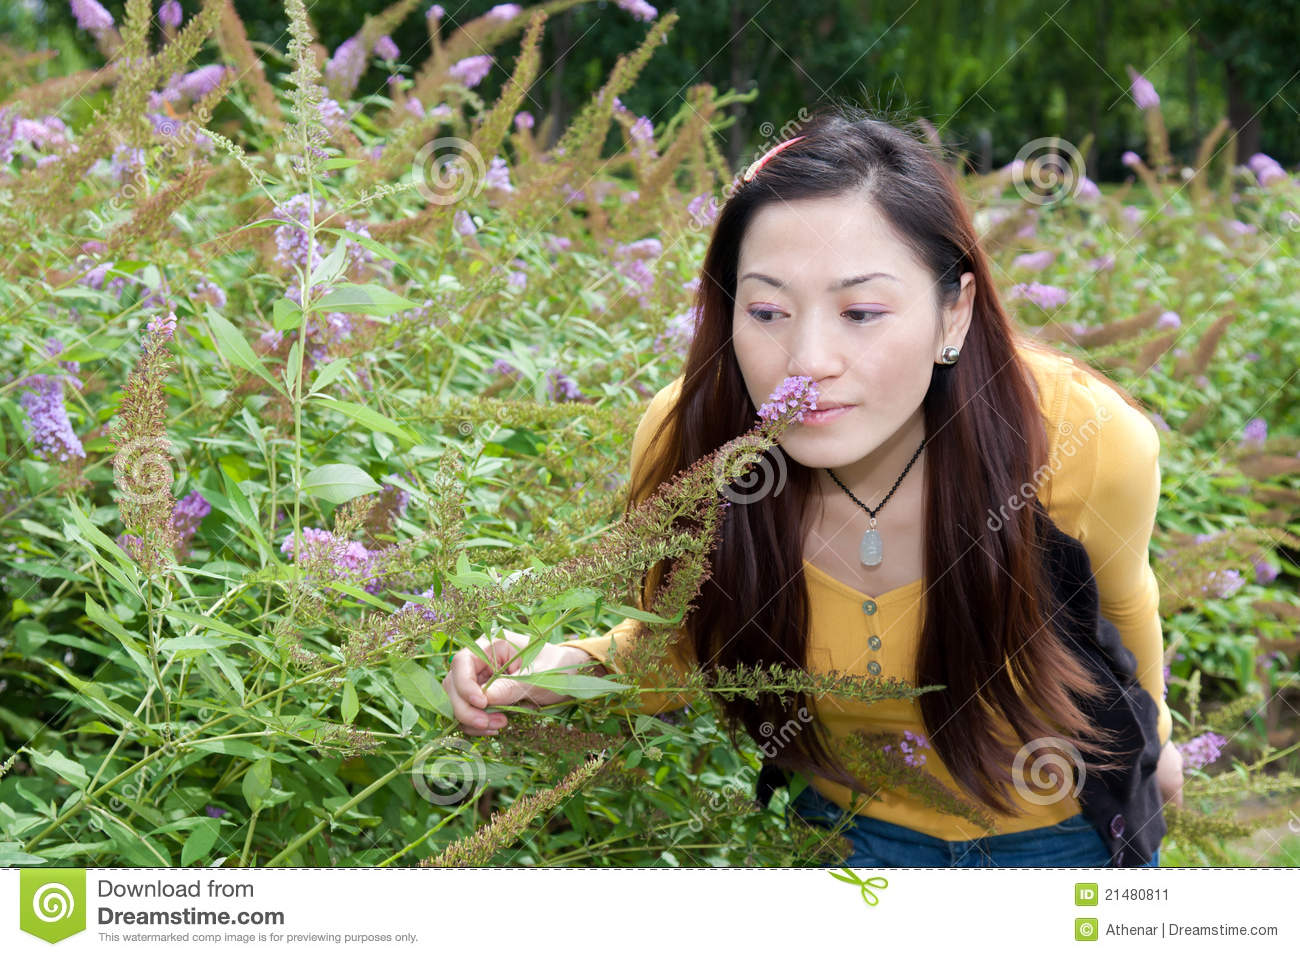 east otis asian girl personals Asian women need to stop dating white //thoughtcatalogcom/macy-sto-domingo/2014/03/white-men-dating-asian-women-isnt-the now all these asian girls.